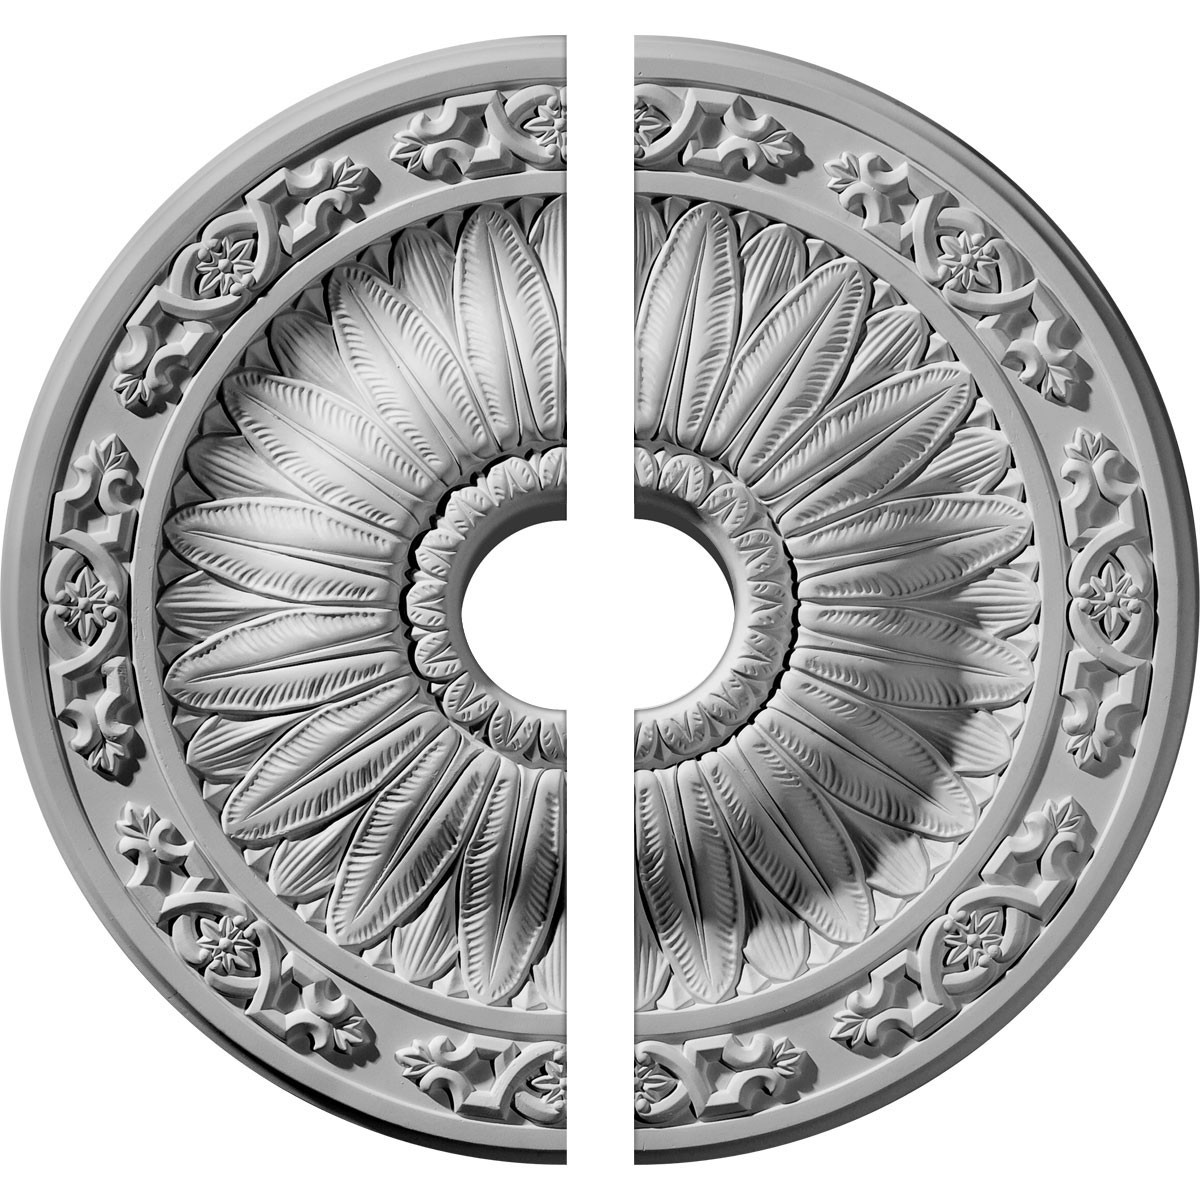 "EM-CM20LU2-03500 - 20 1/4""OD x 3 1/2""ID x 1 1/2""P Lunel Ceiling Medallion, Two Piece (Fits Canopies up to 3 3/4"")"